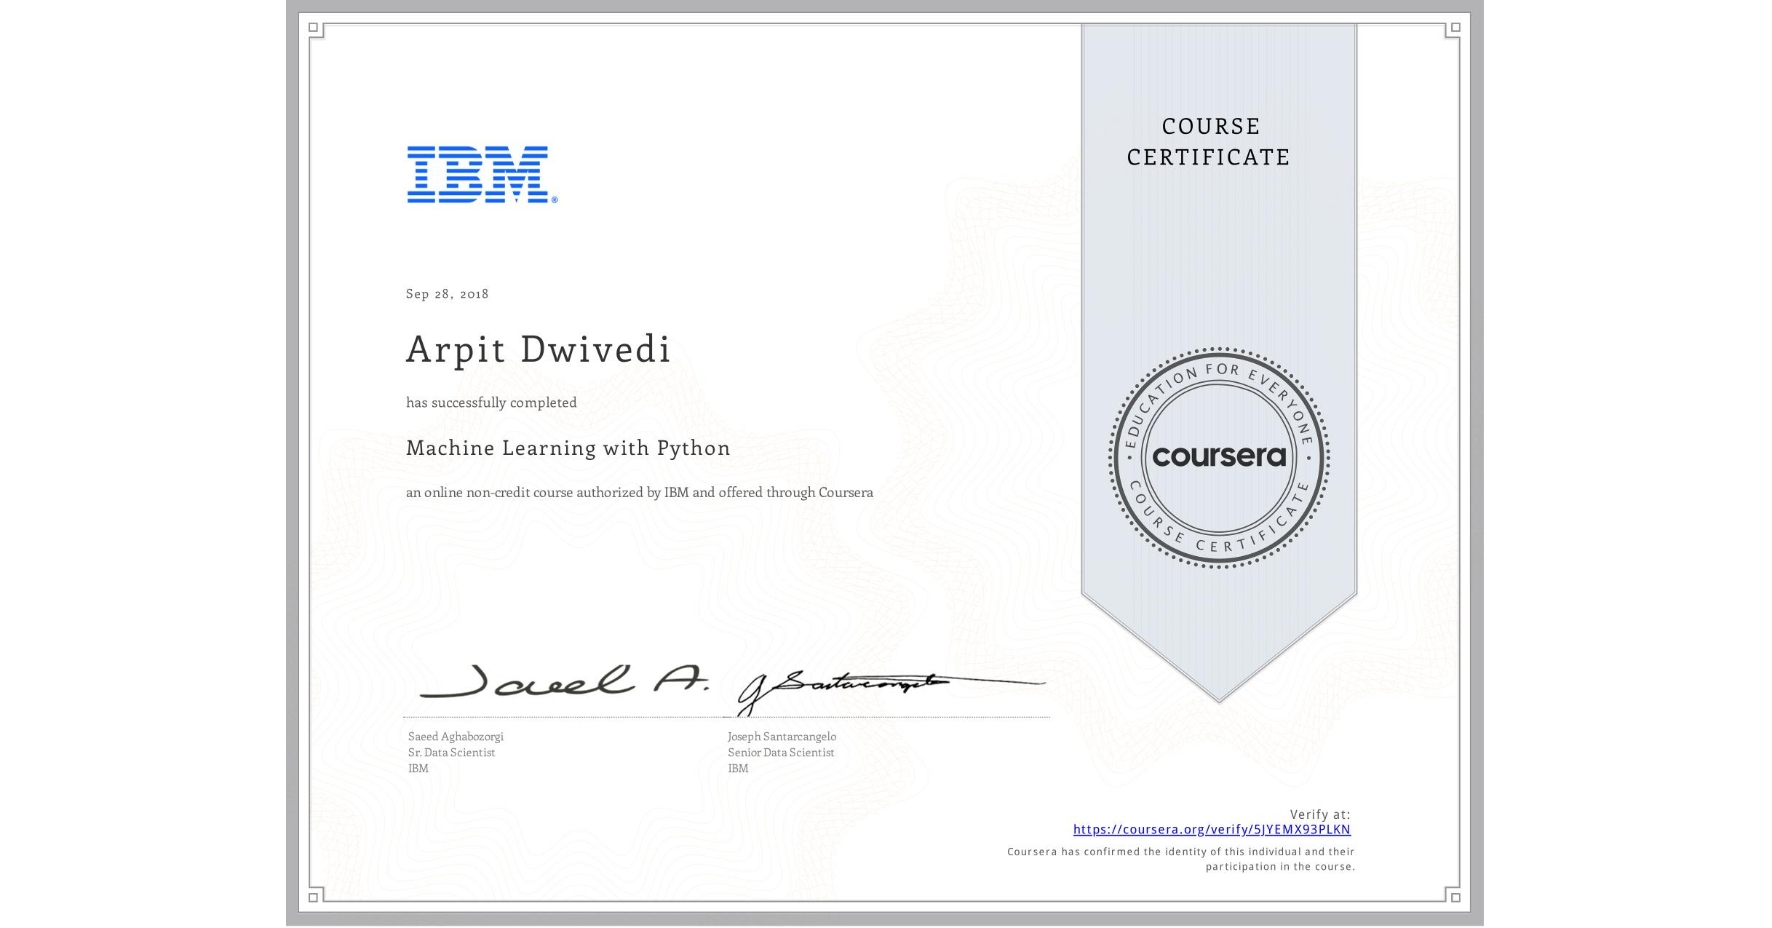 View certificate for Arpit Dwivedi, Machine Learning with Python, an online non-credit course authorized by IBM and offered through Coursera